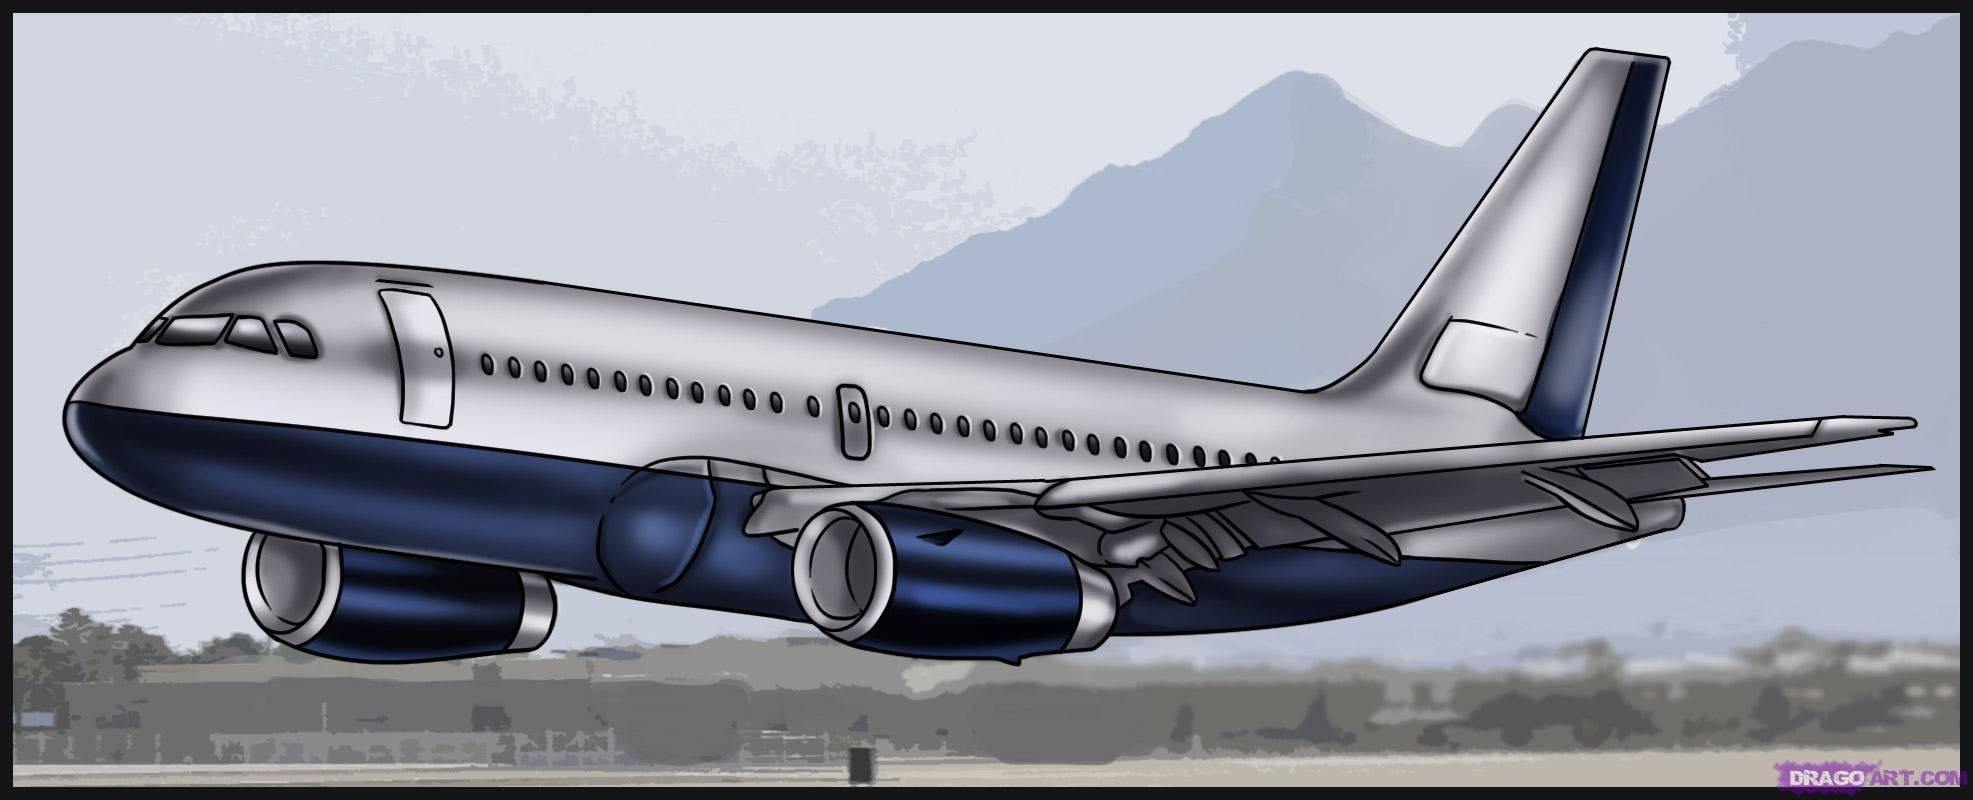 Drawn airplane realistic #1